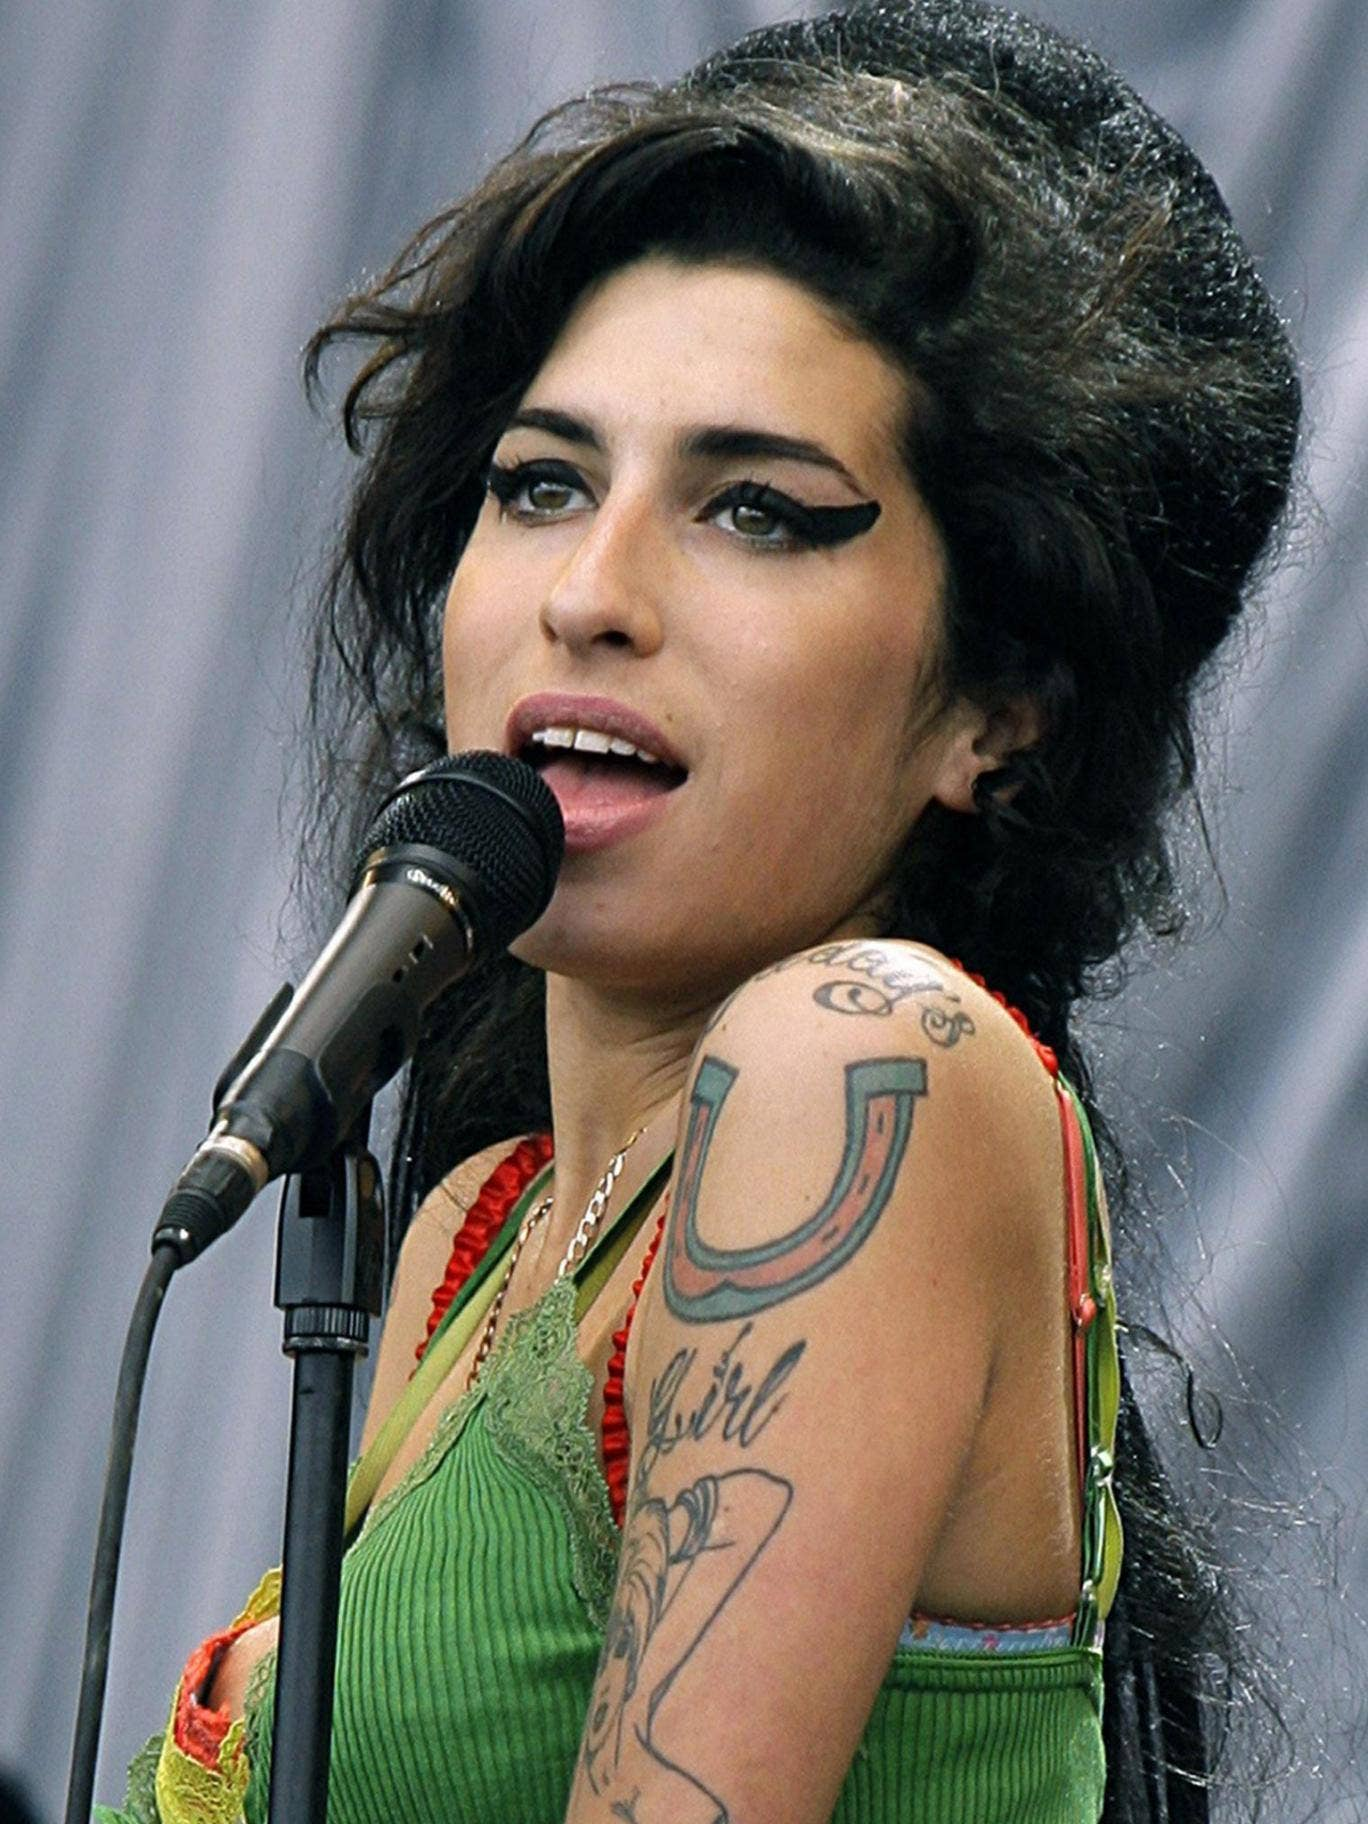 Amy Winehouse joined the '27 club' in July of last year